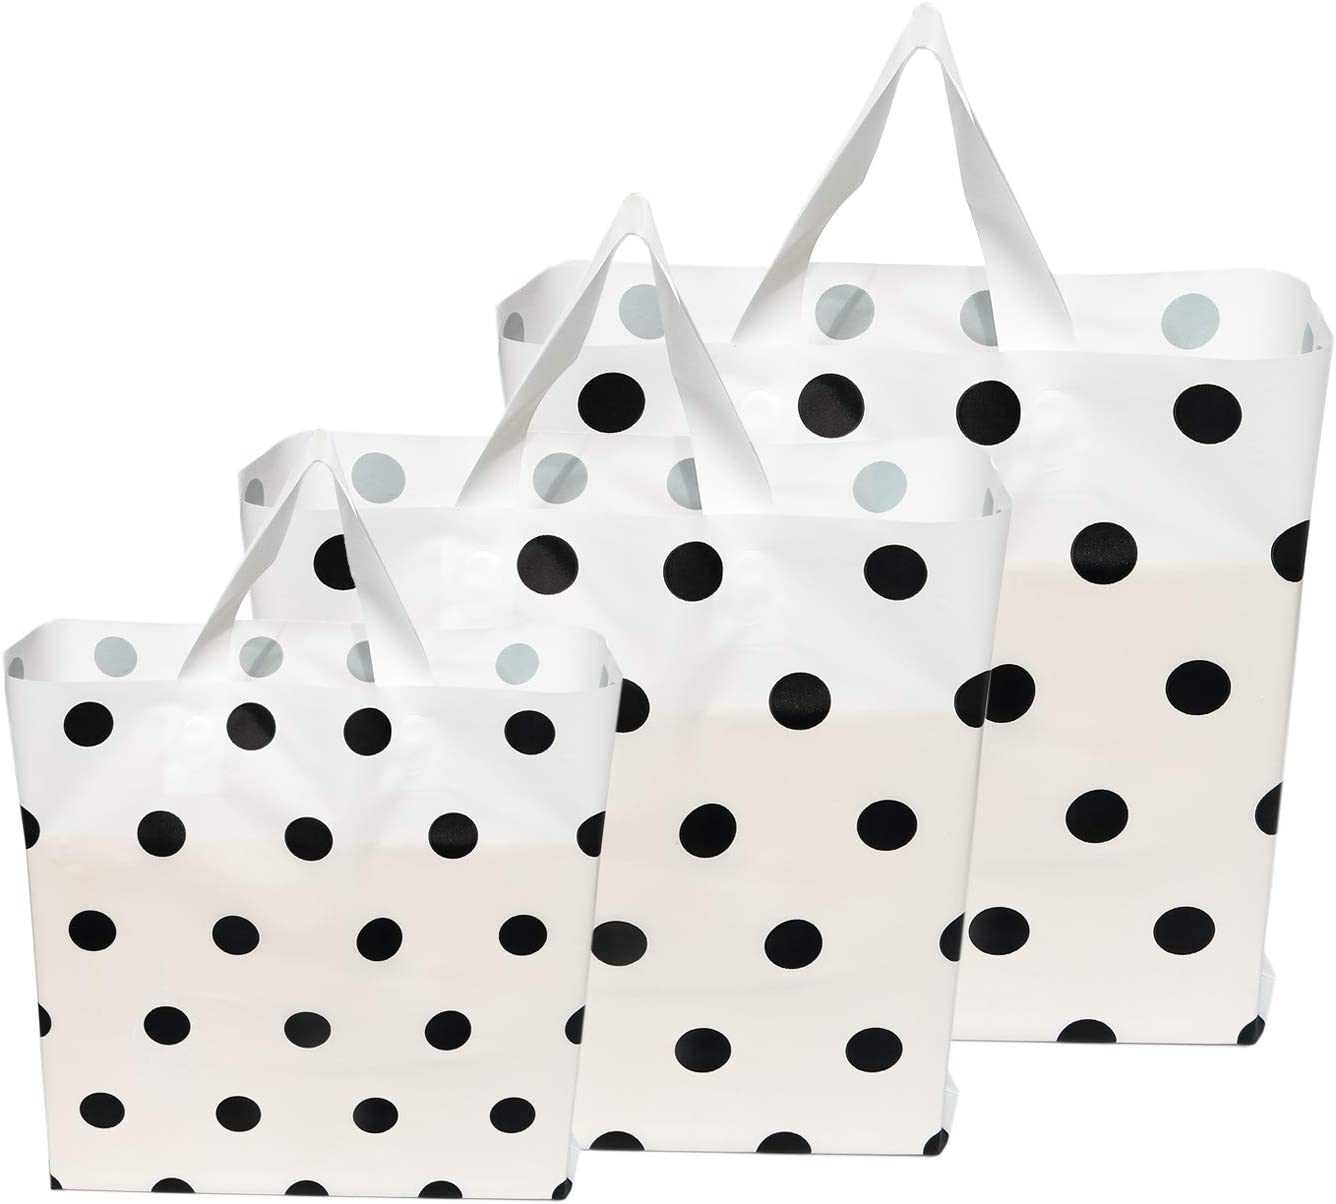 FENGLY Extra Thick Frosted unisex Recommendation Plastic Recyclable Shopping Bags Bag